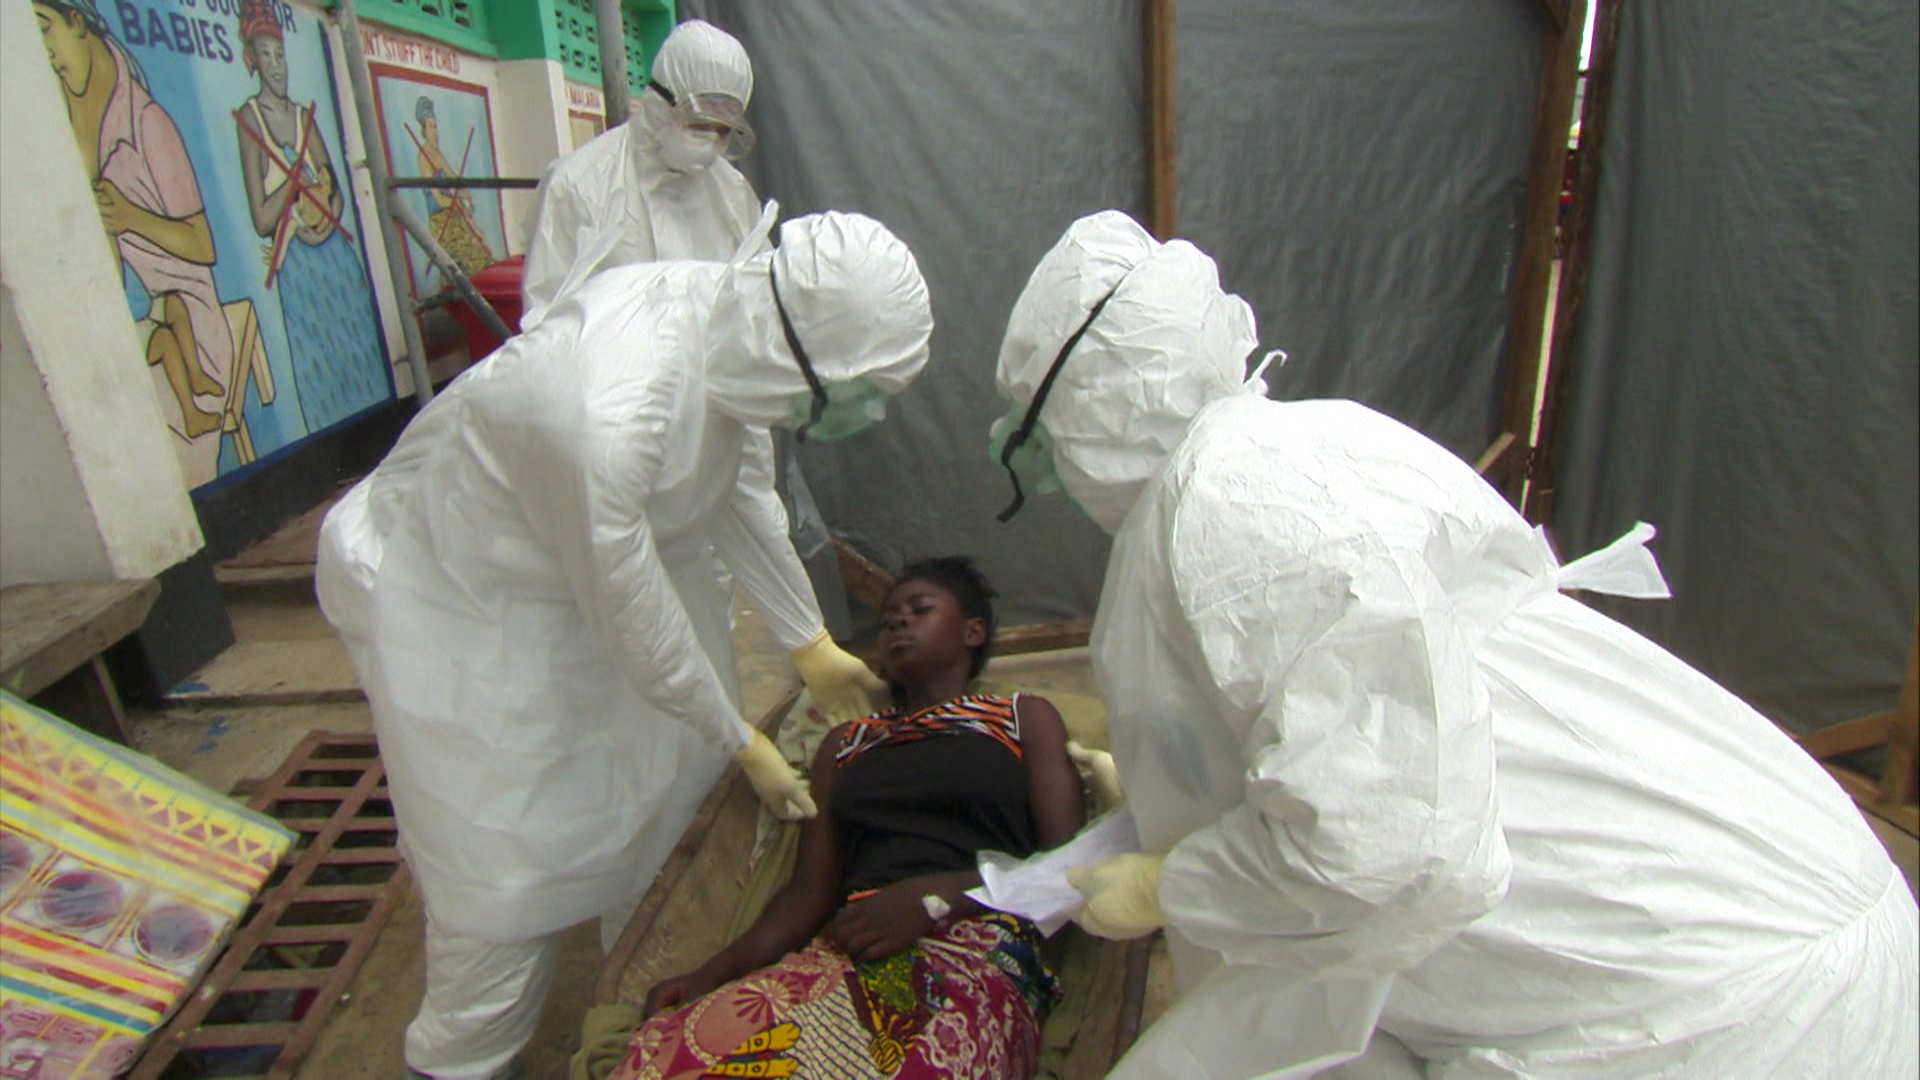 ebola ebola ebola Ebola definition, a usually fatal disease, a type of hemorrhagic fever, caused by the ebola virus and marked by high fever, severe gastrointestinal distress, and.